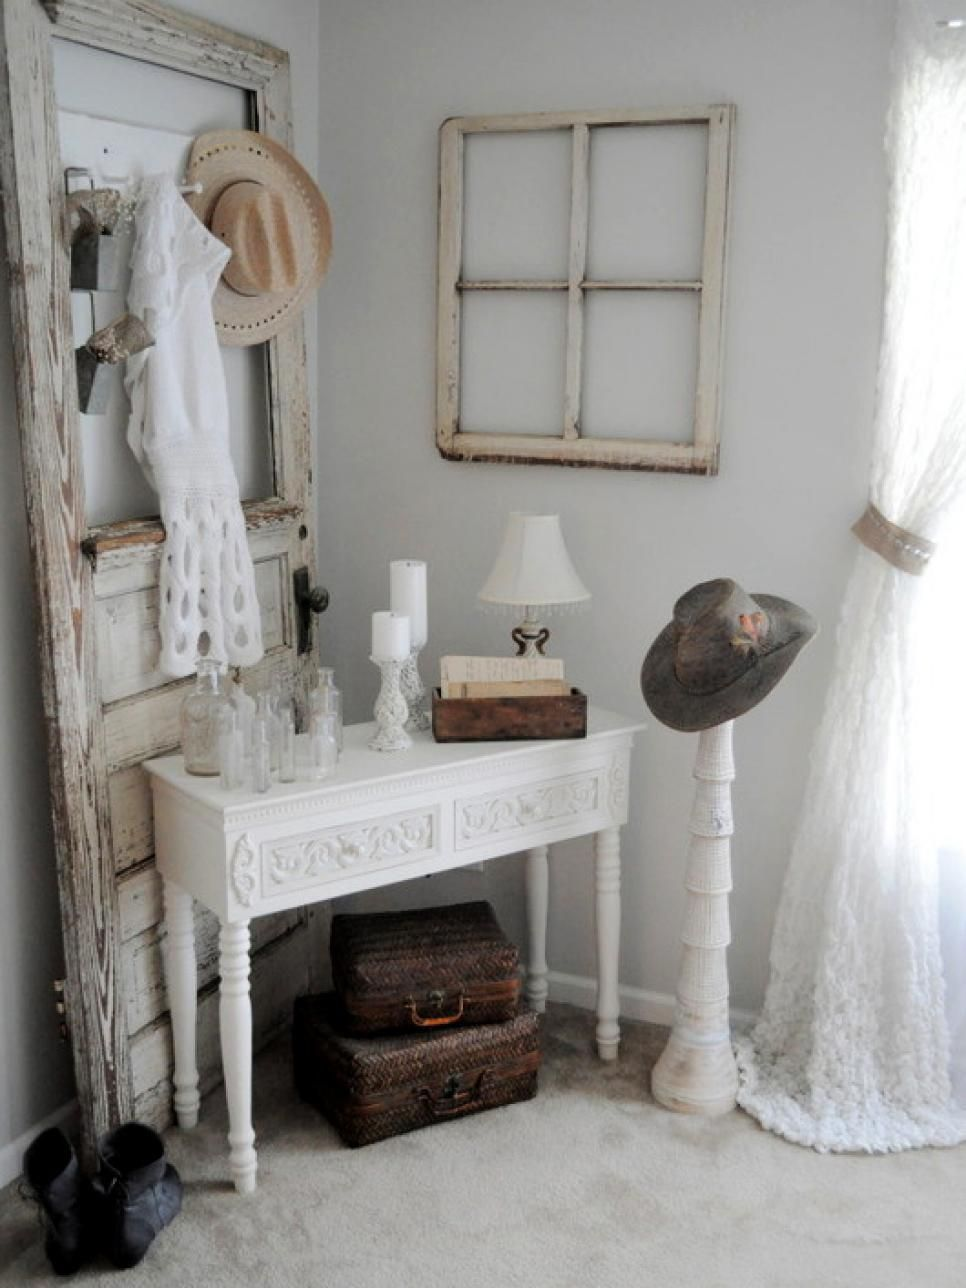 Dedicate An Entire Space To A Rustic Theme. The Turn Of The